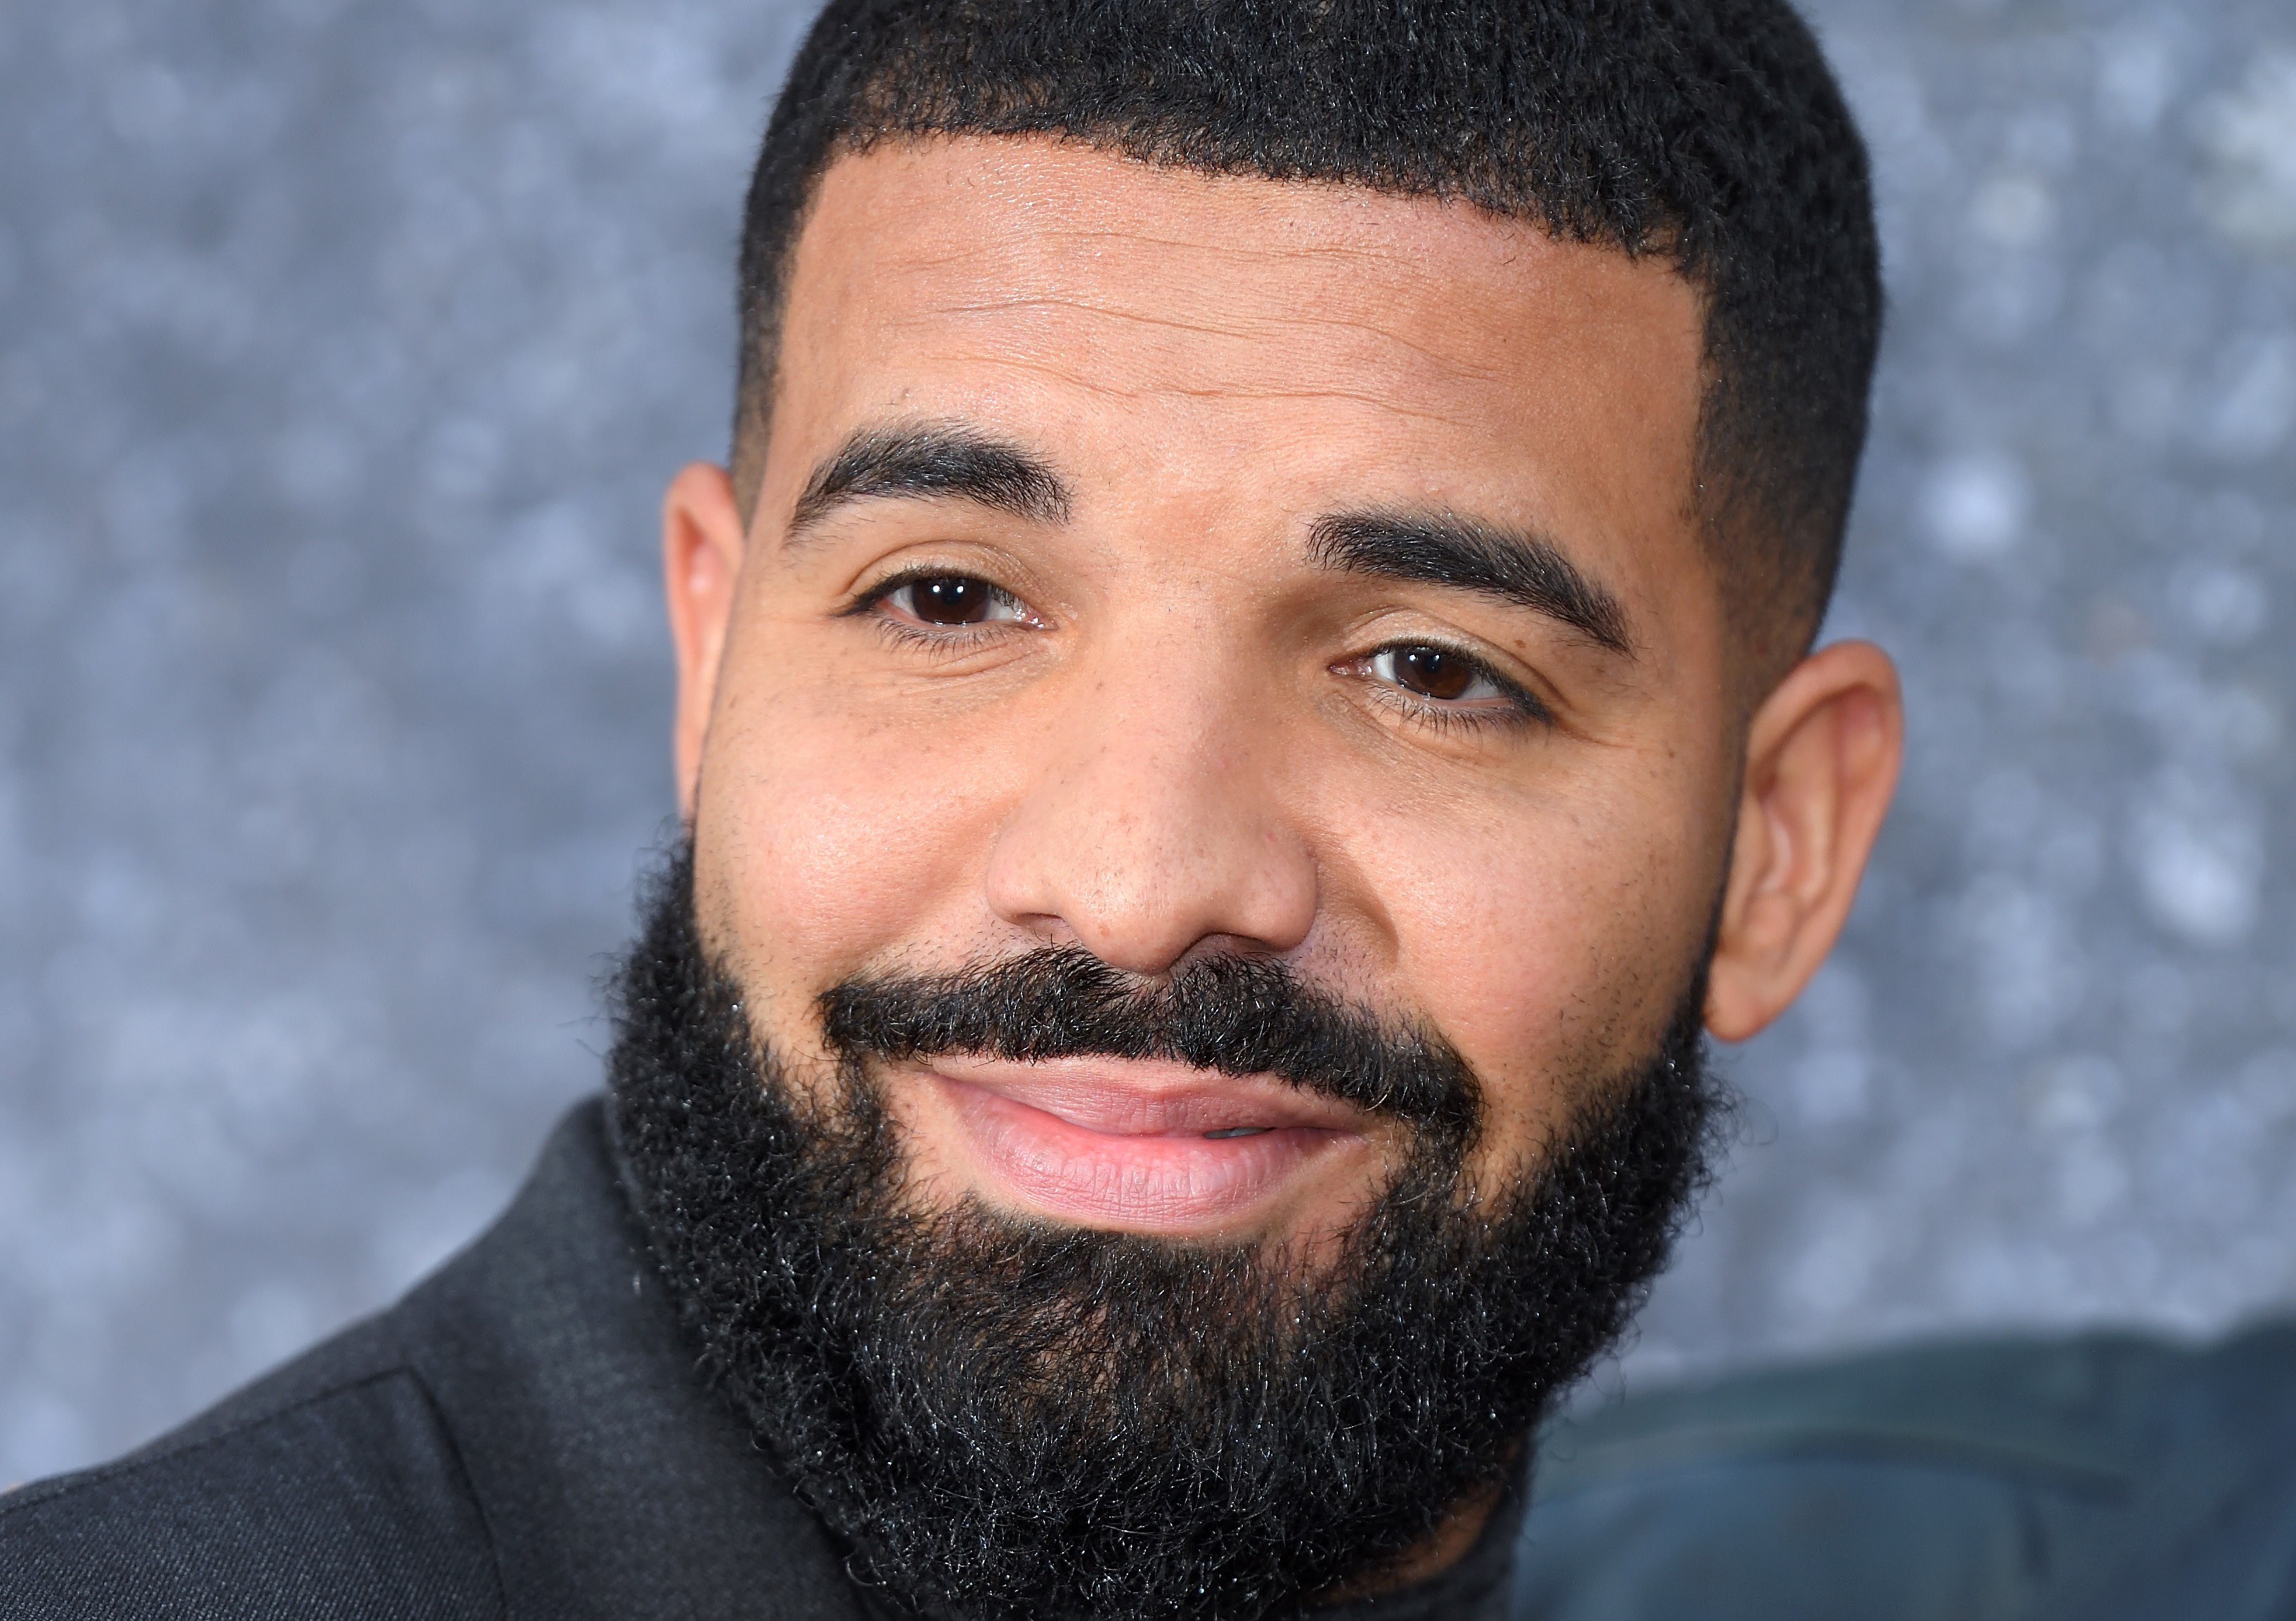 Drake attends an event in 2019.